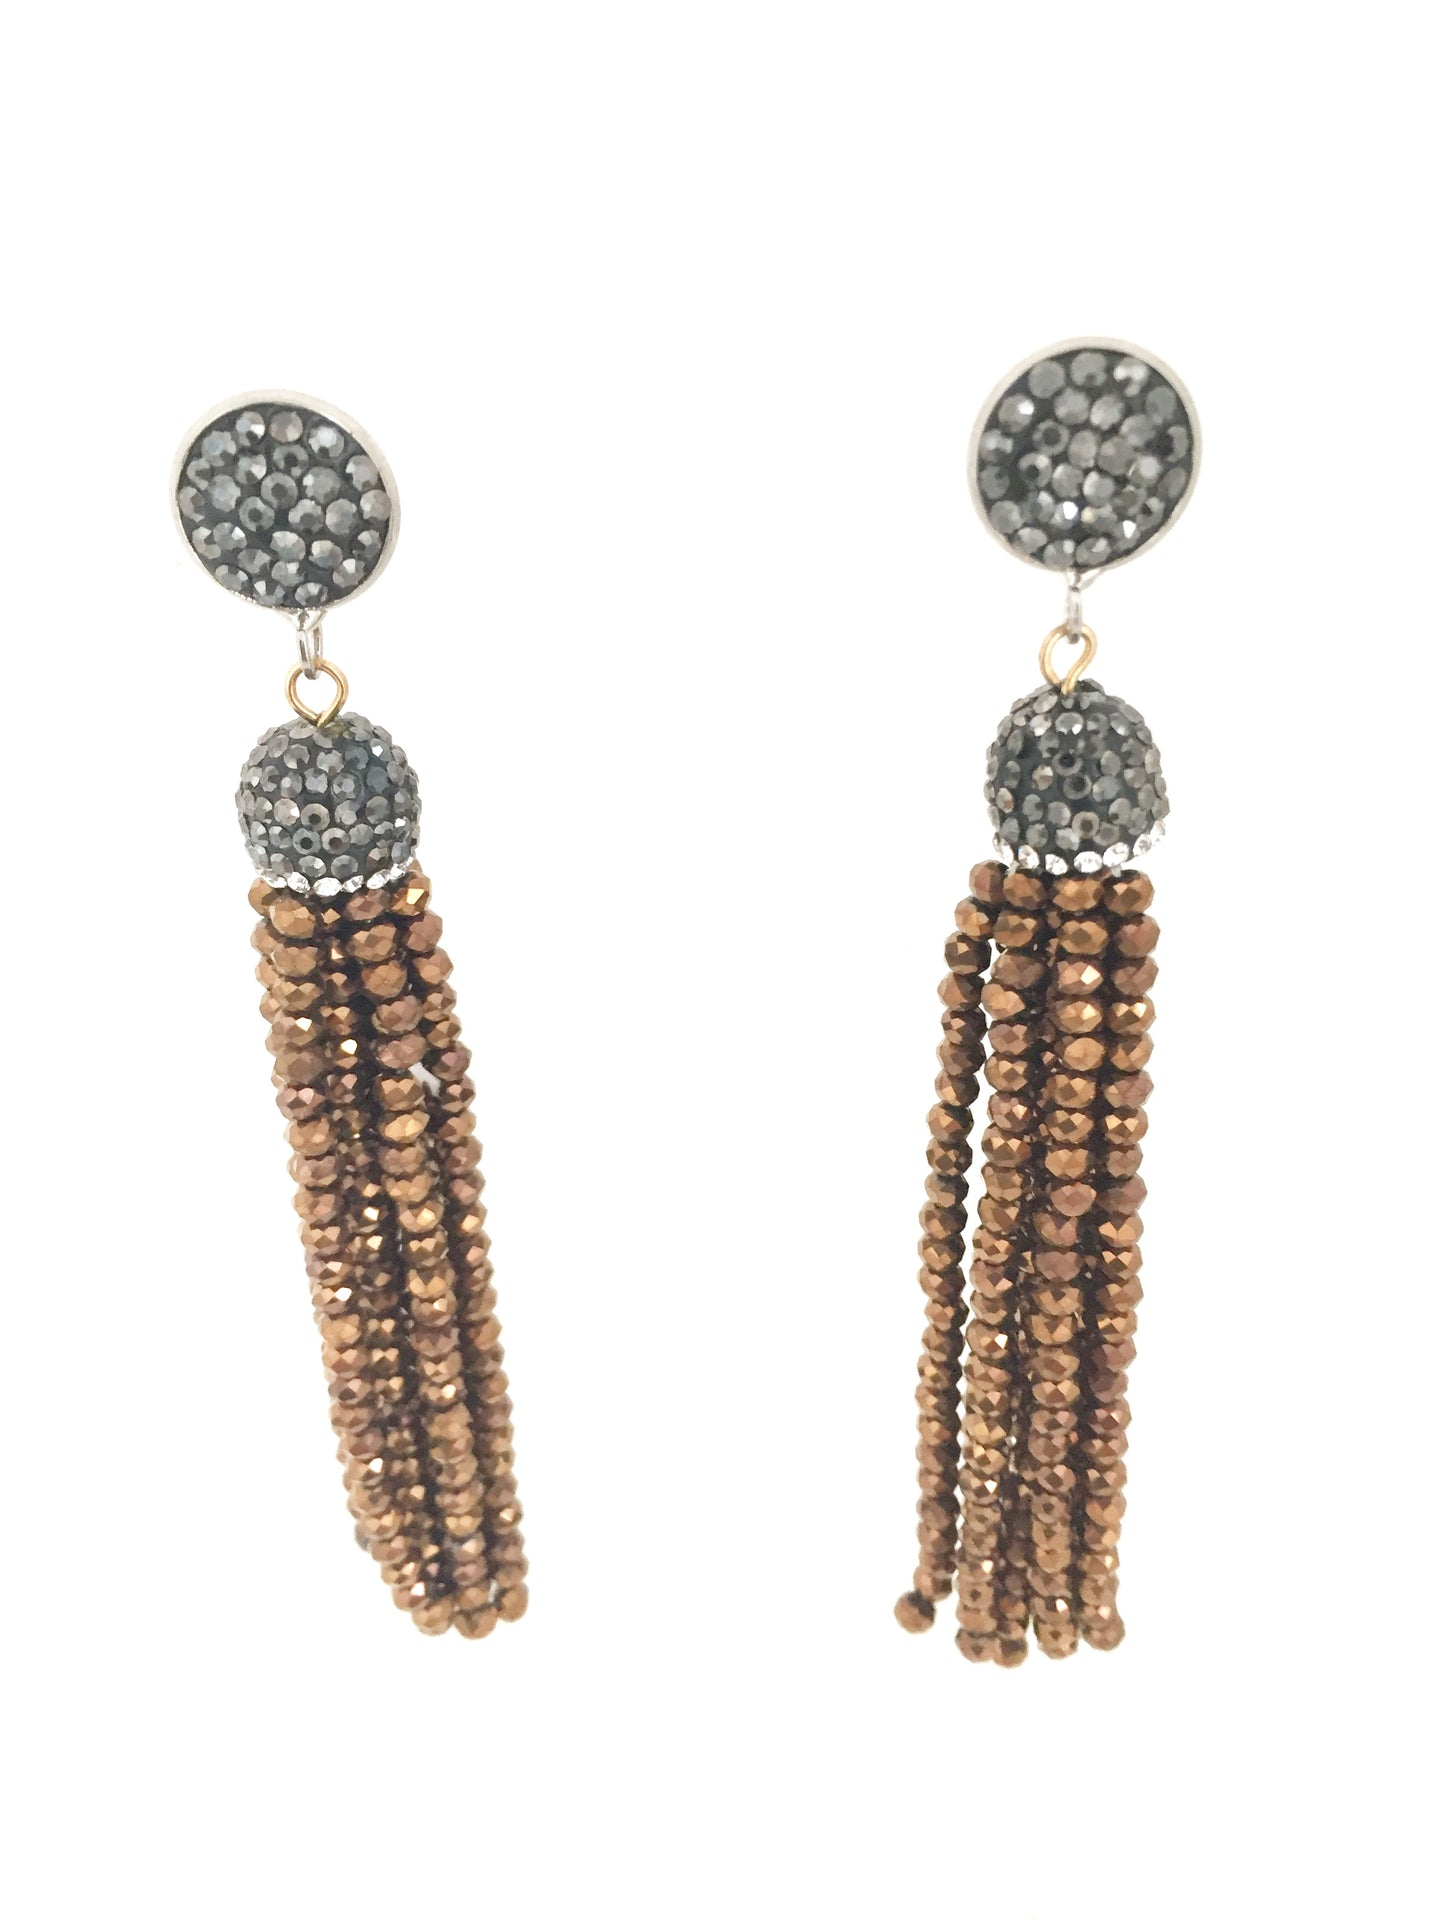 MOINETTE- CRYSTAL AND RHINESTONE EARRINGS -BRONZE